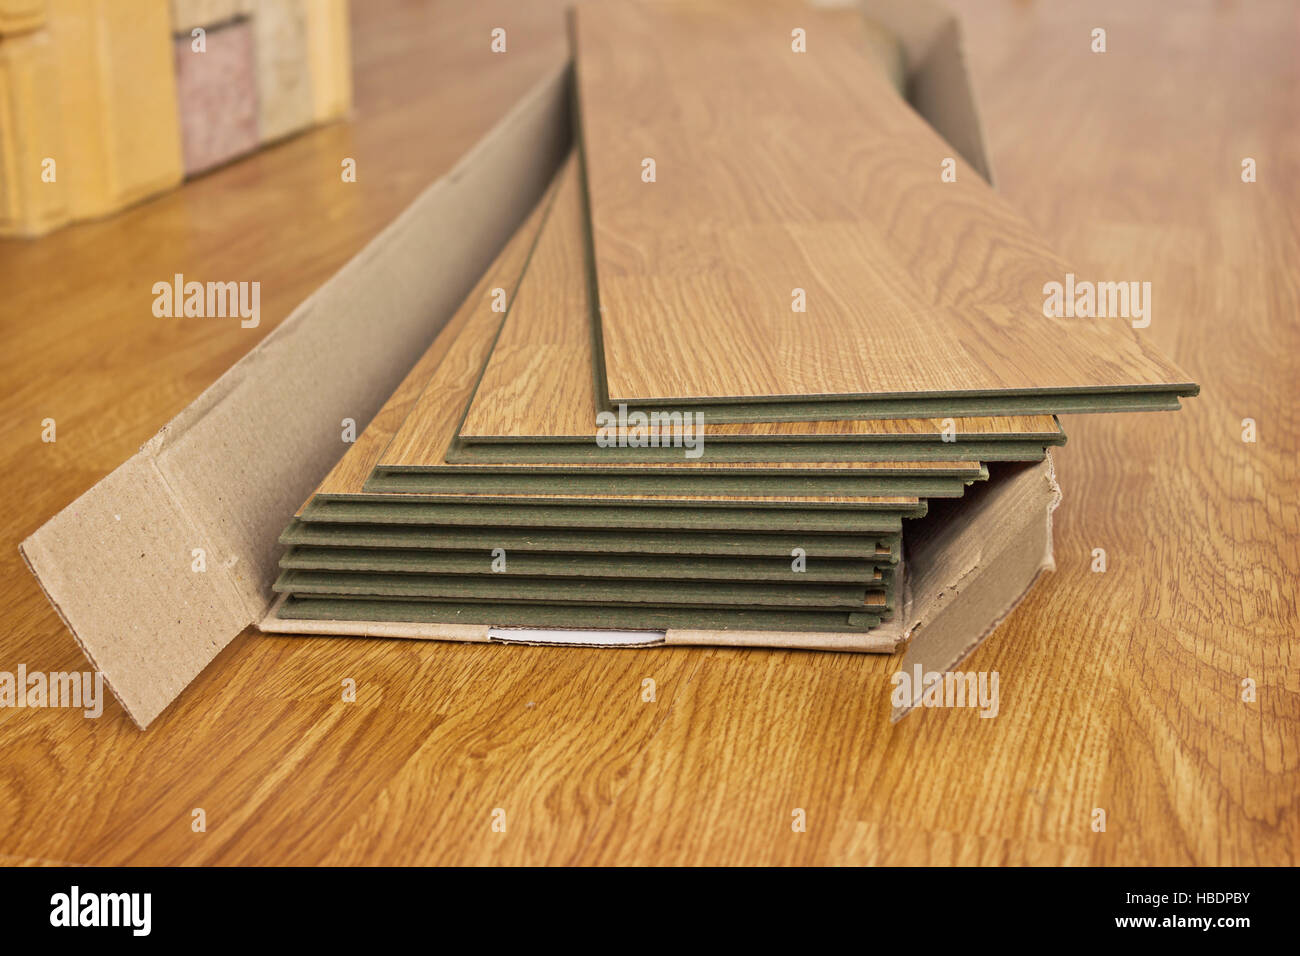 Laminated panels the color of the wood - Stock Image